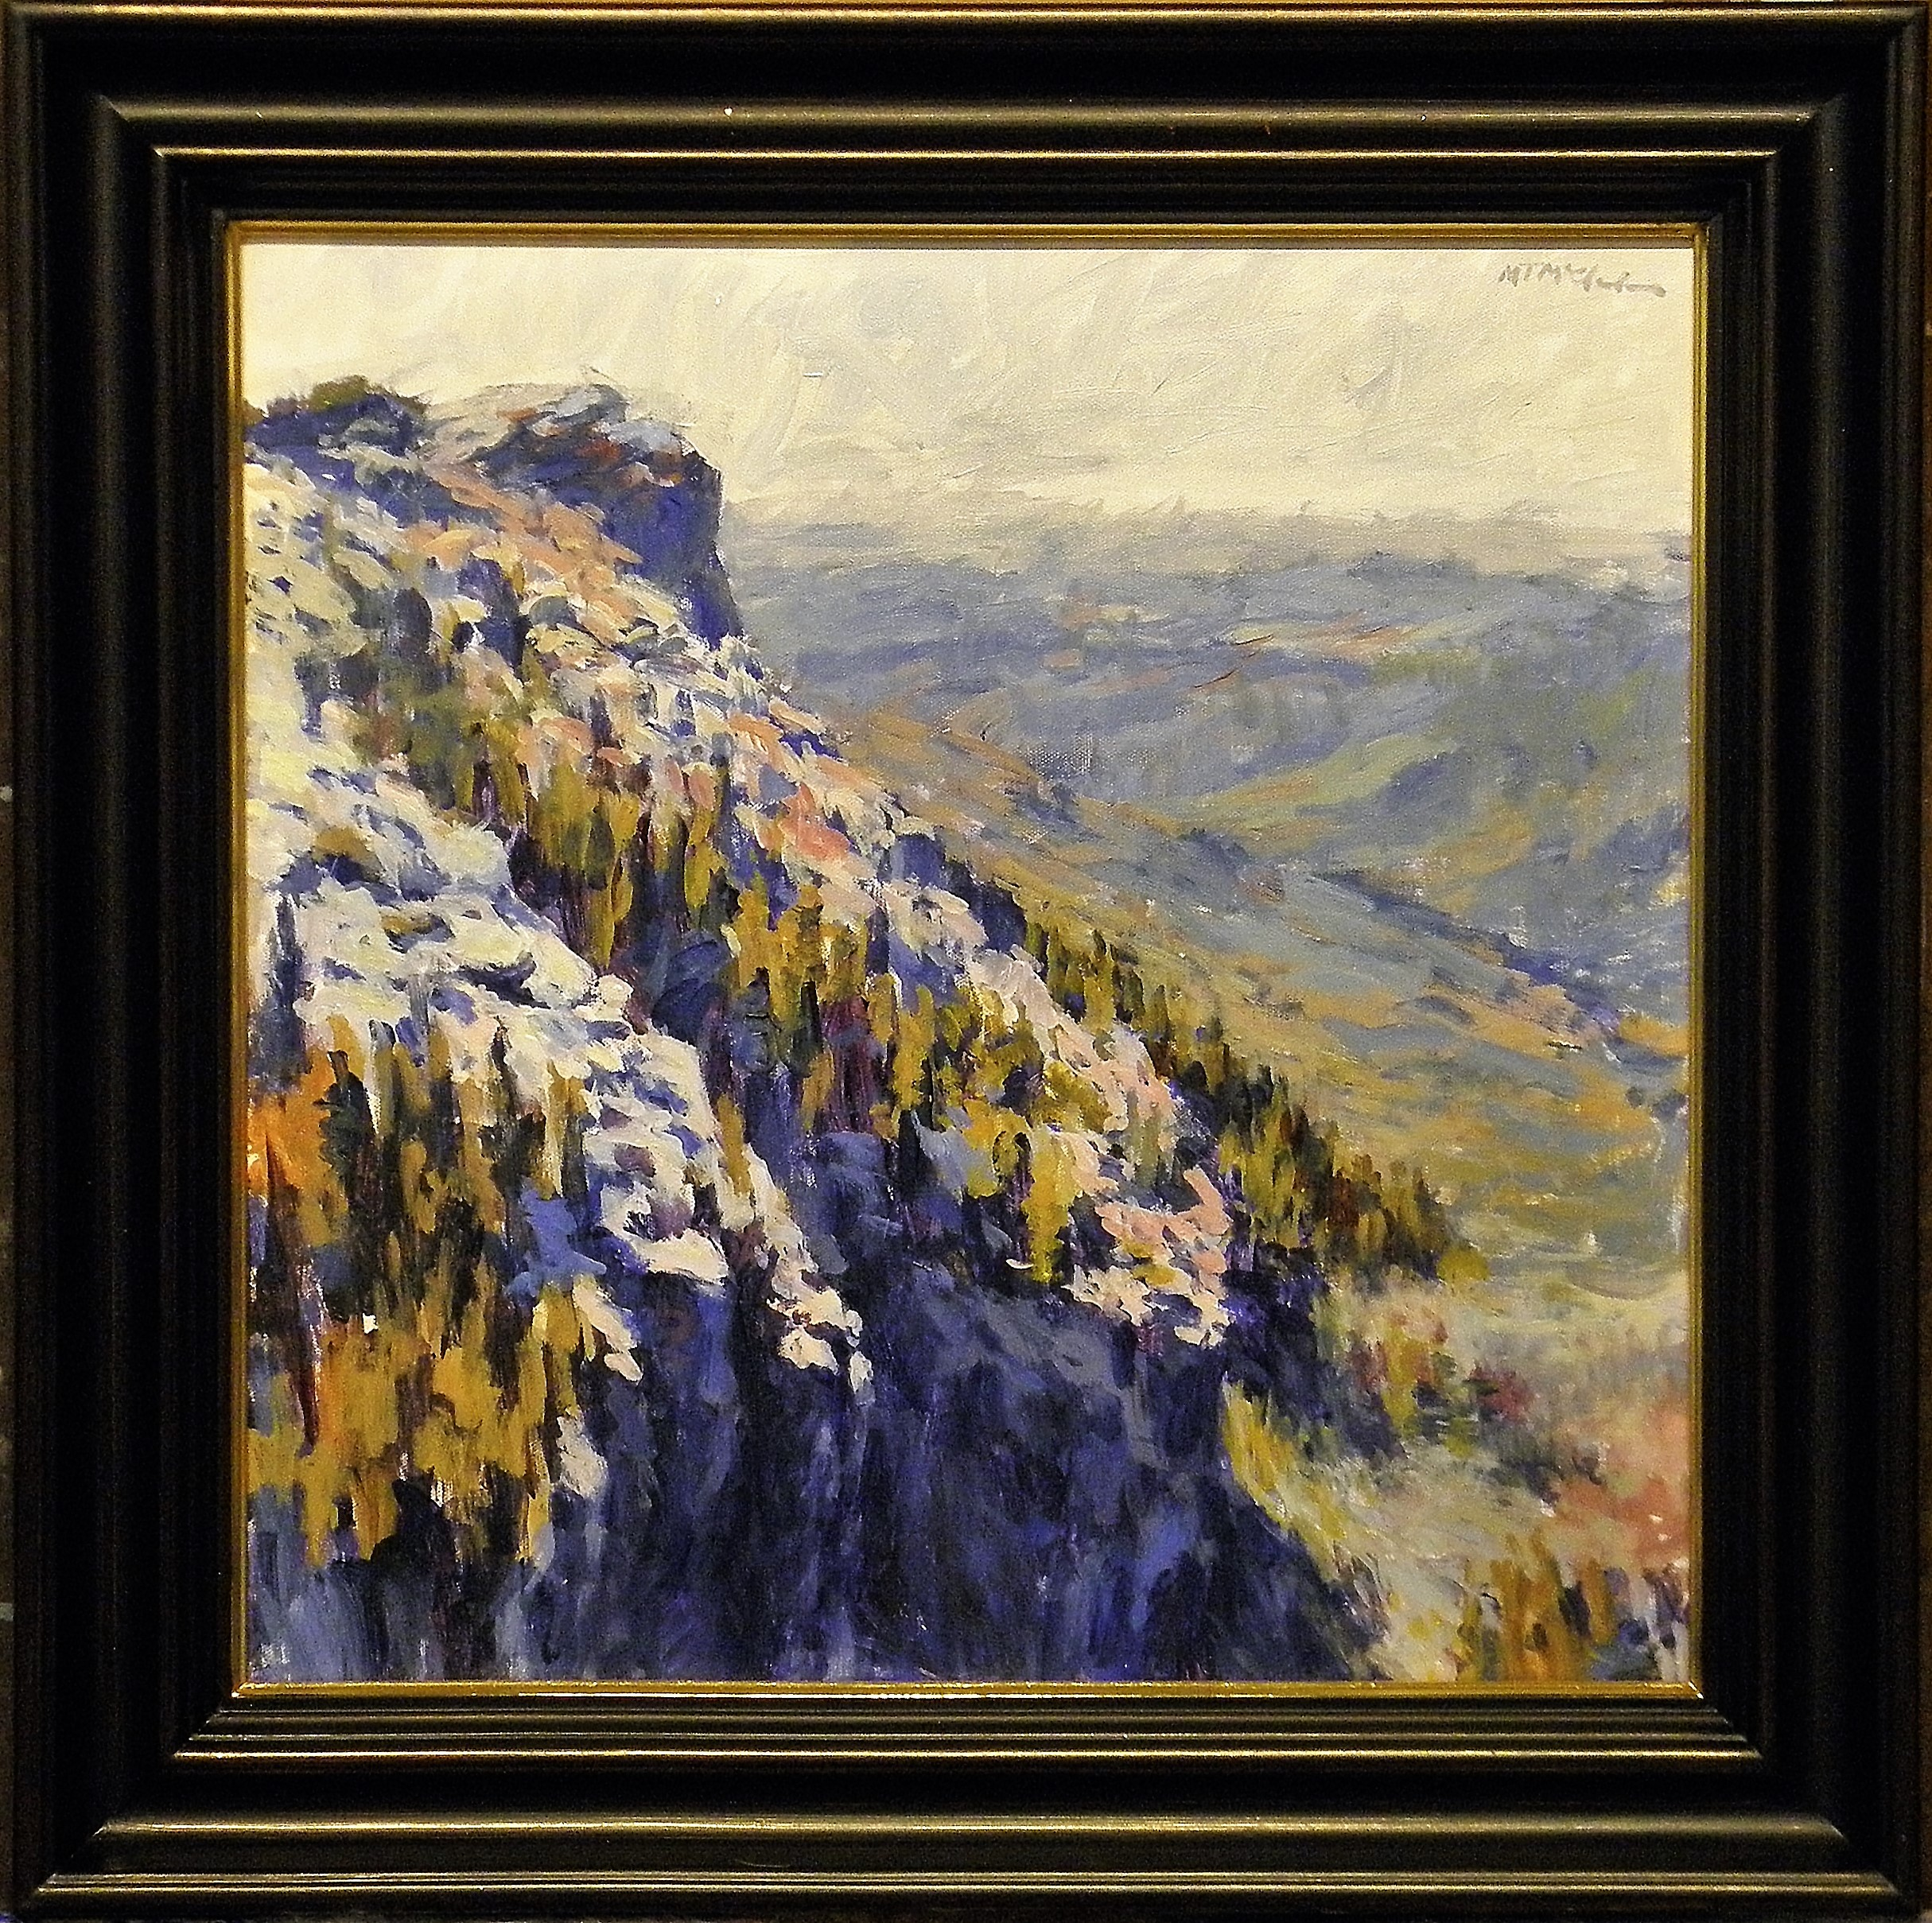 Original Mountainscape Painting